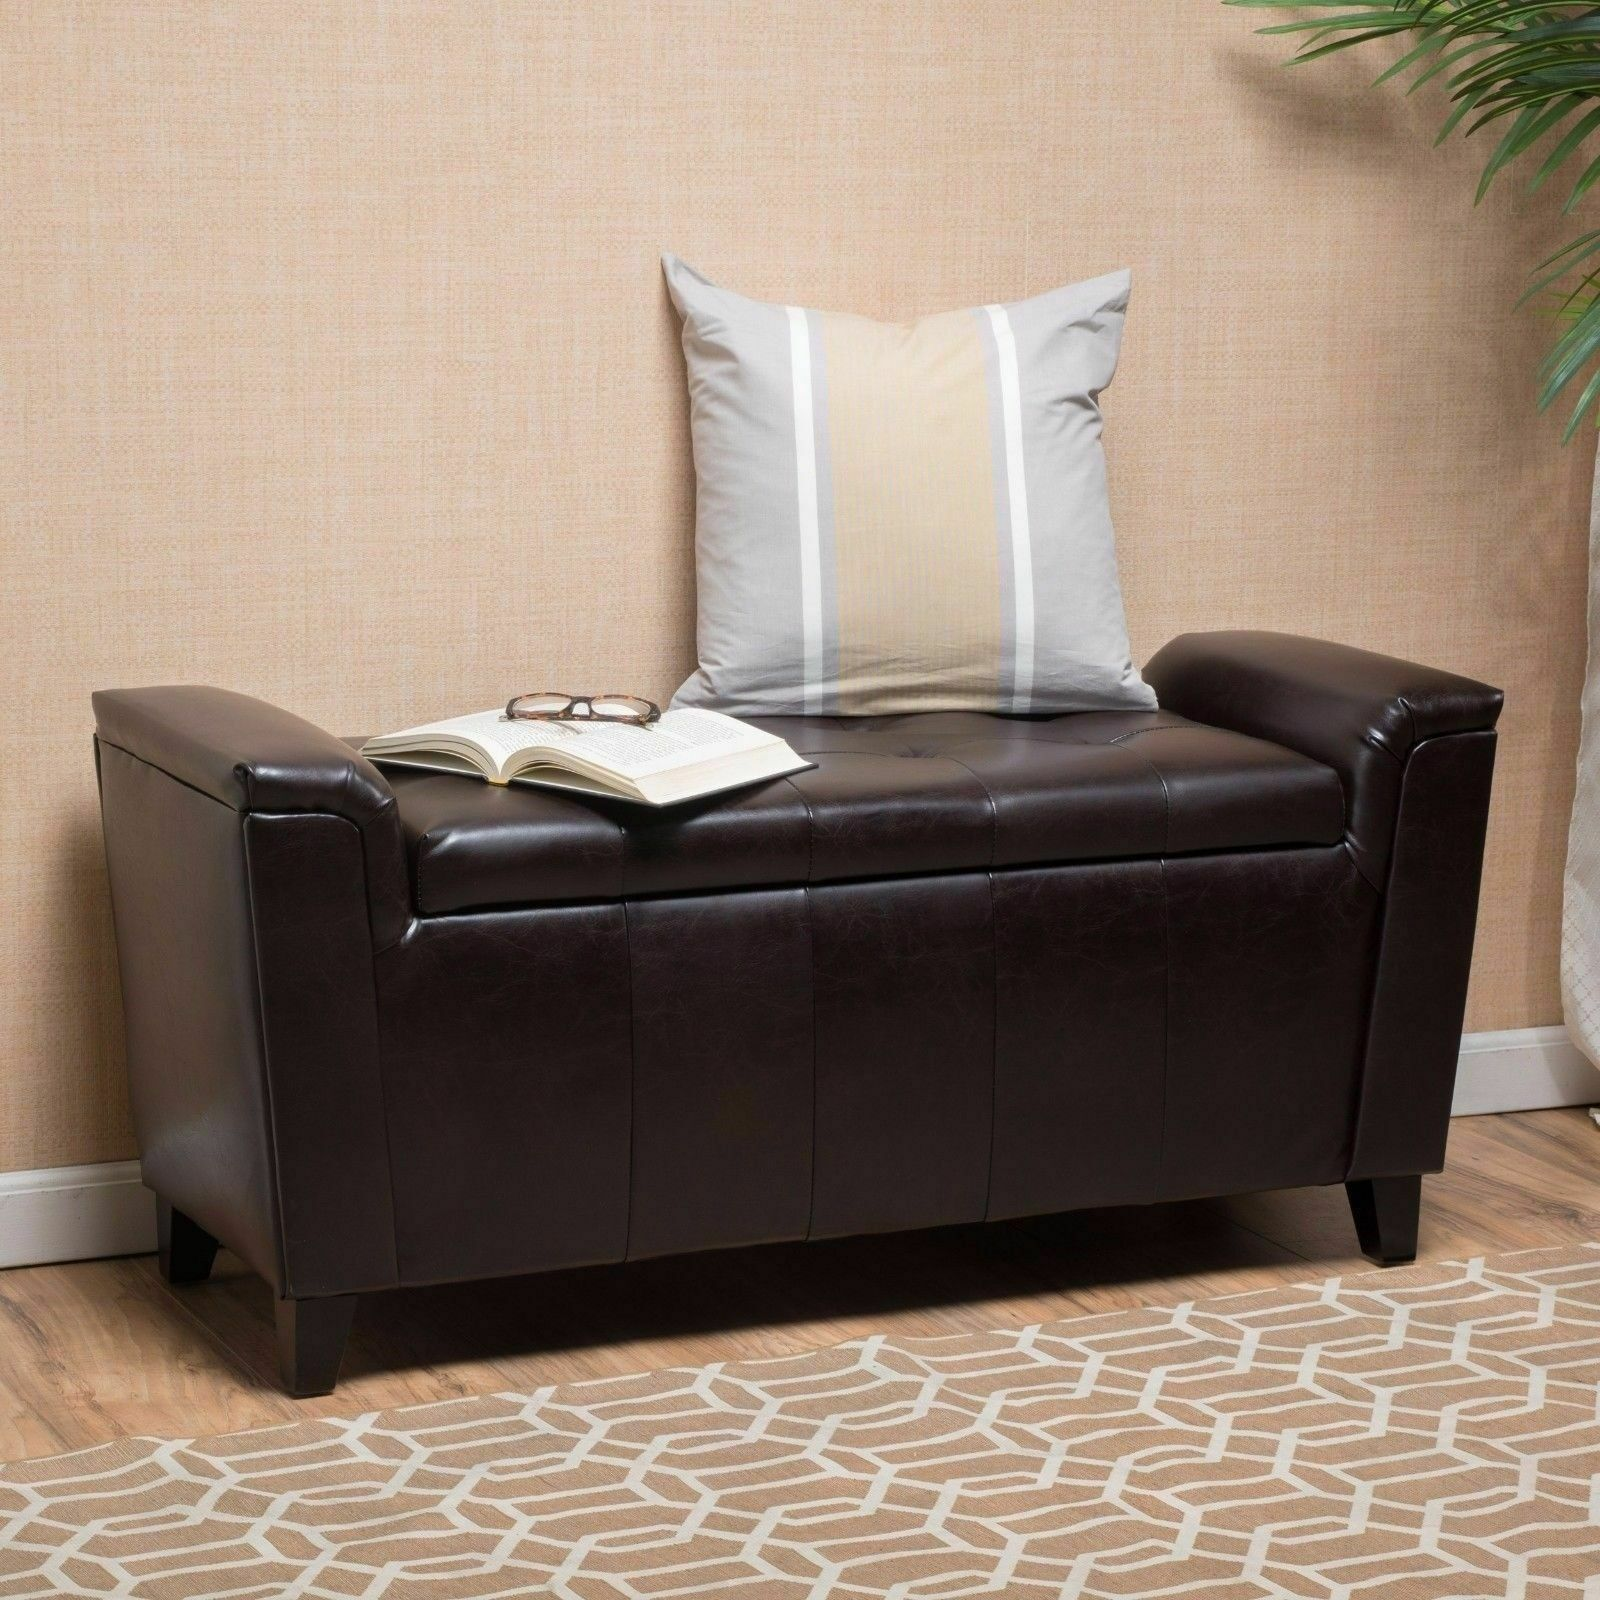 Contemporary Brown Tufted Leather Armed Storage Ottoman Bench 1 Of 4FREE  Shipping ...